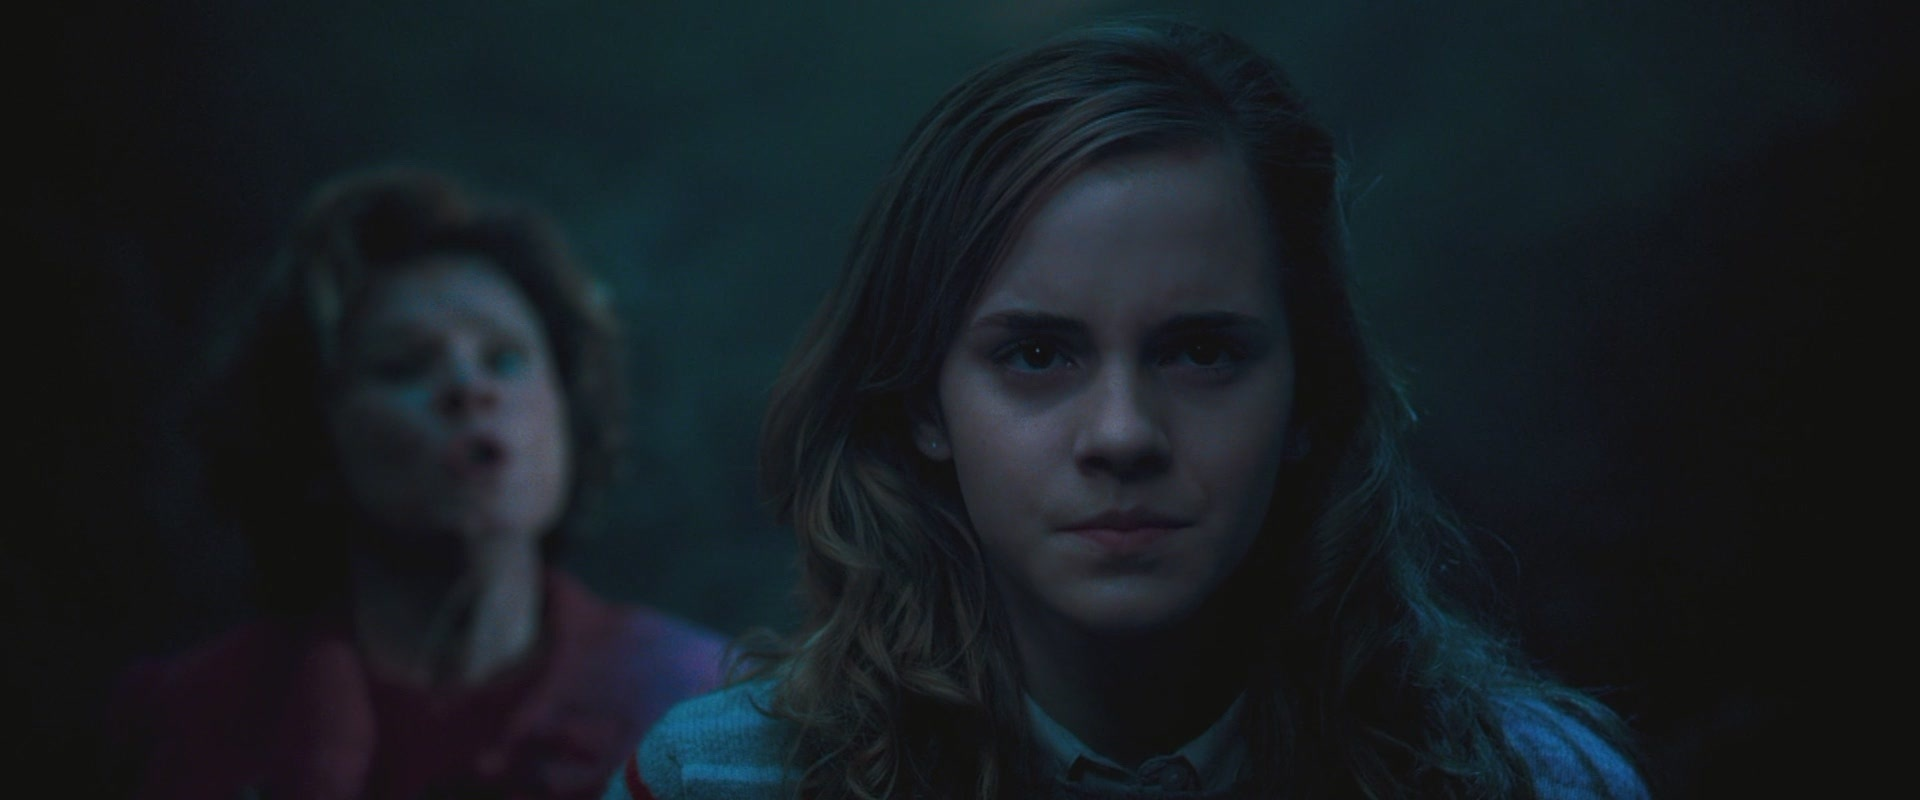 Hermione order of the phoenix hermione granger 17172588 - Hermione granger harry potter and the order of the phoenix ...